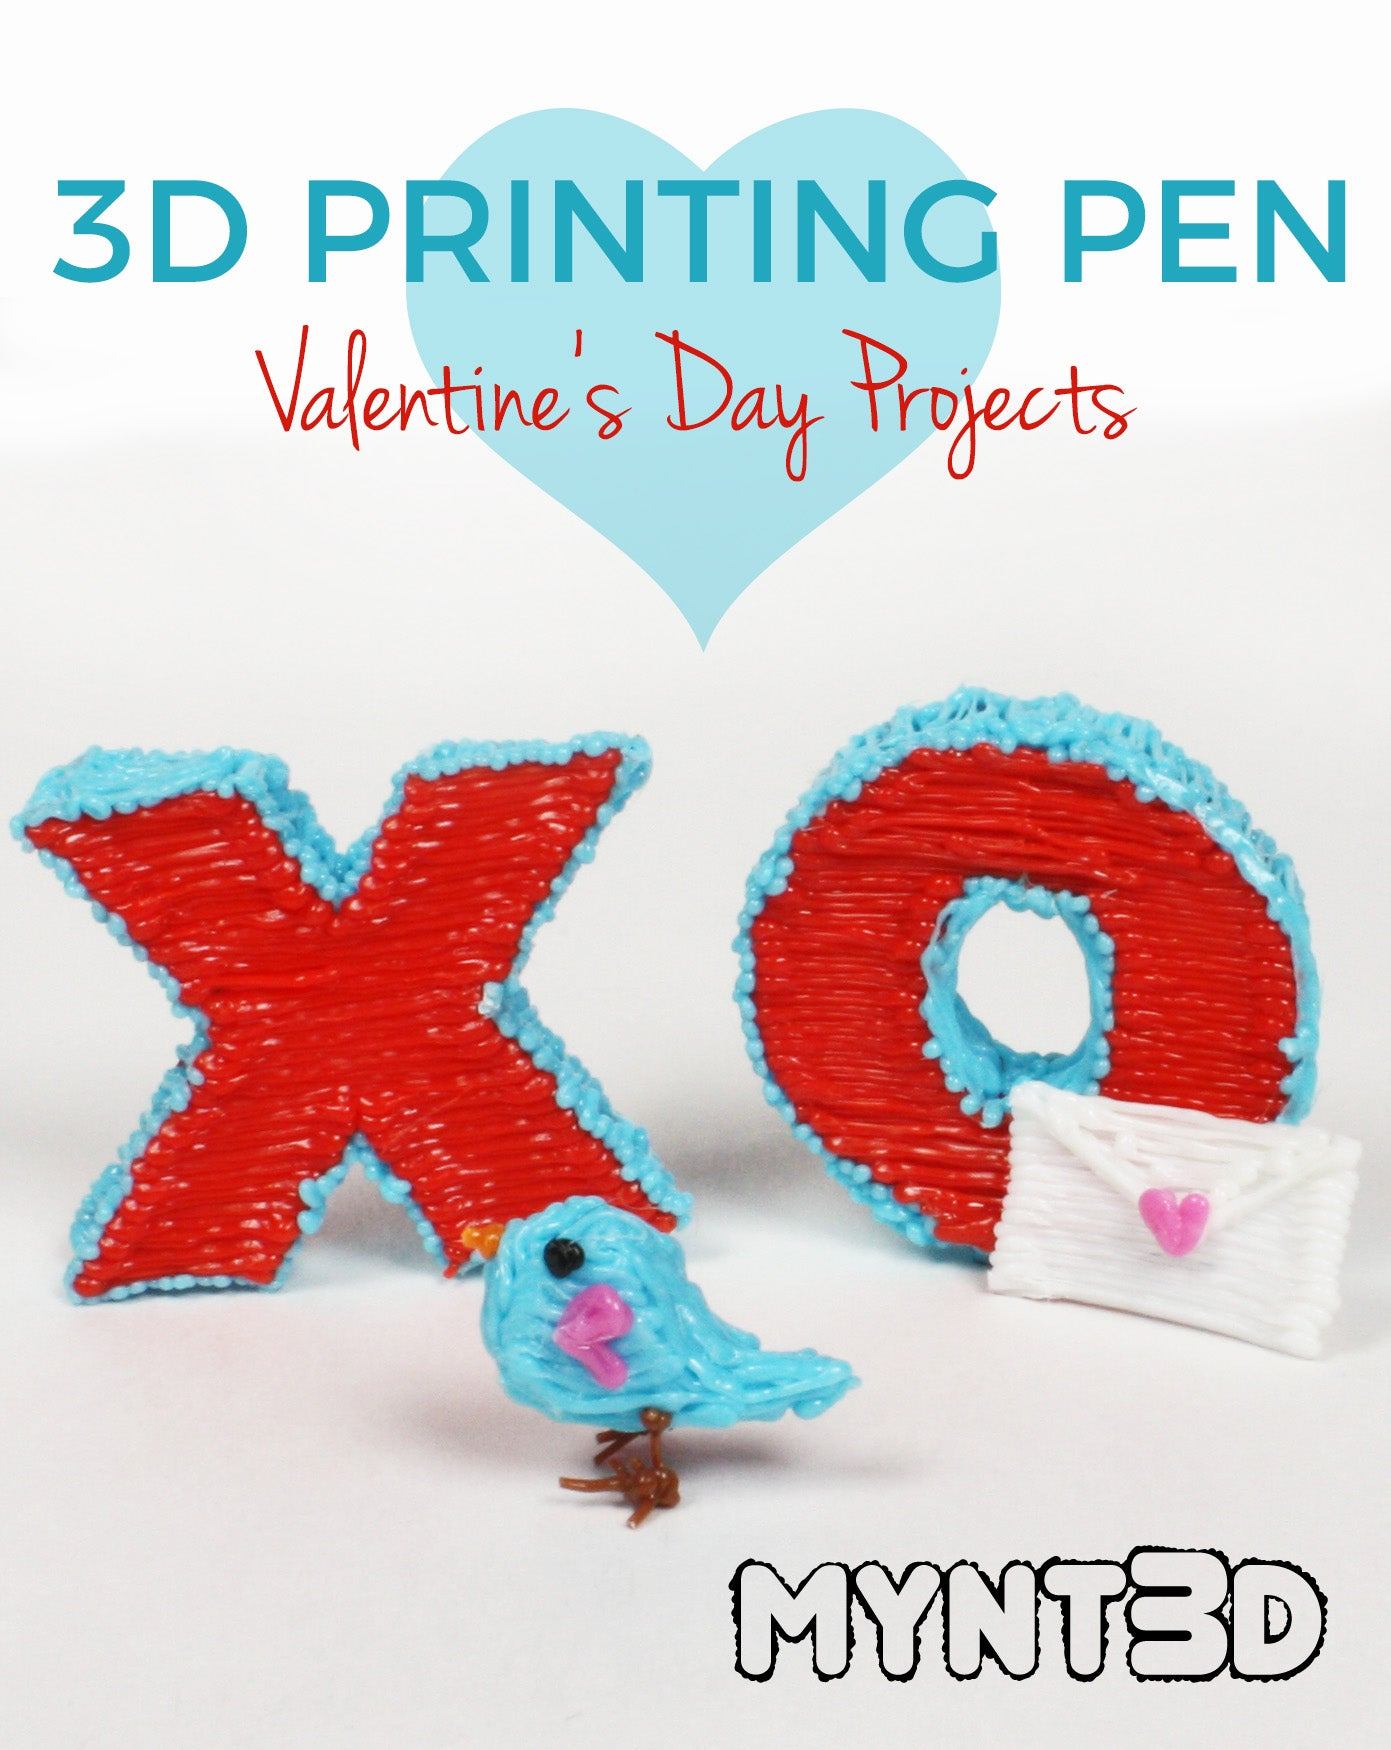 4 Valentine's Day Projects to Make with a 3D Pen